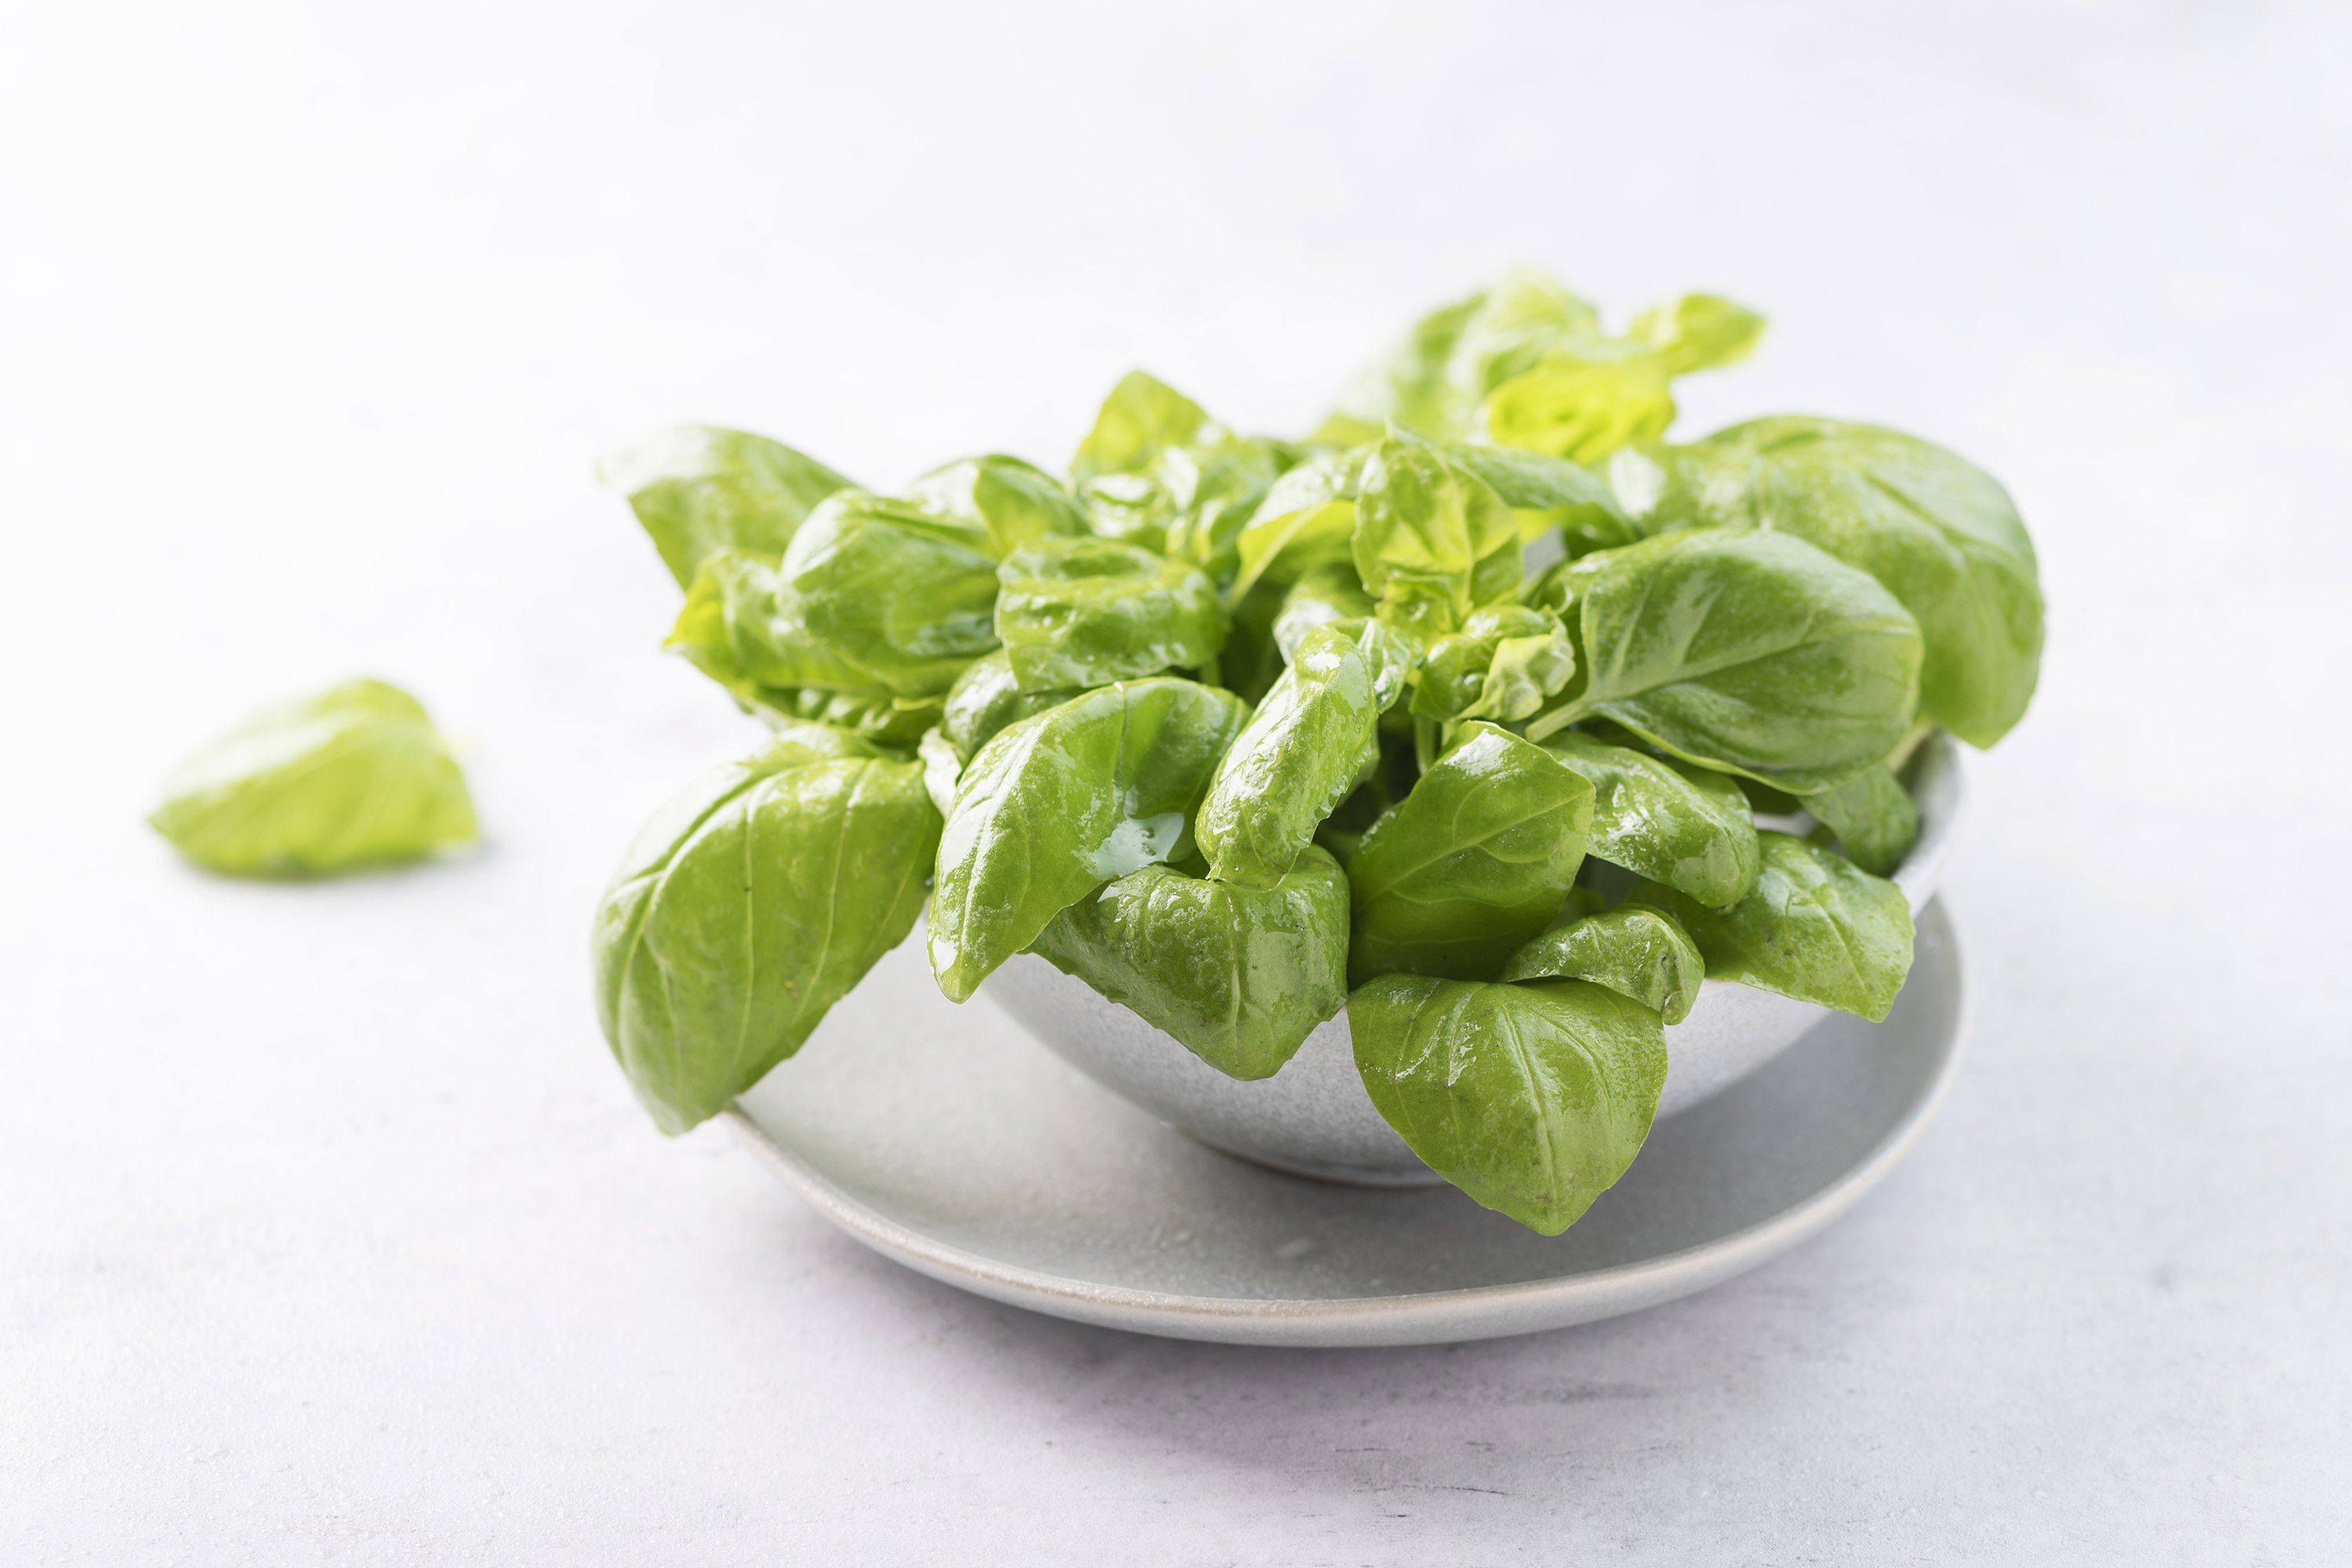 Fresh green basil in the ceramic bowl example image 1